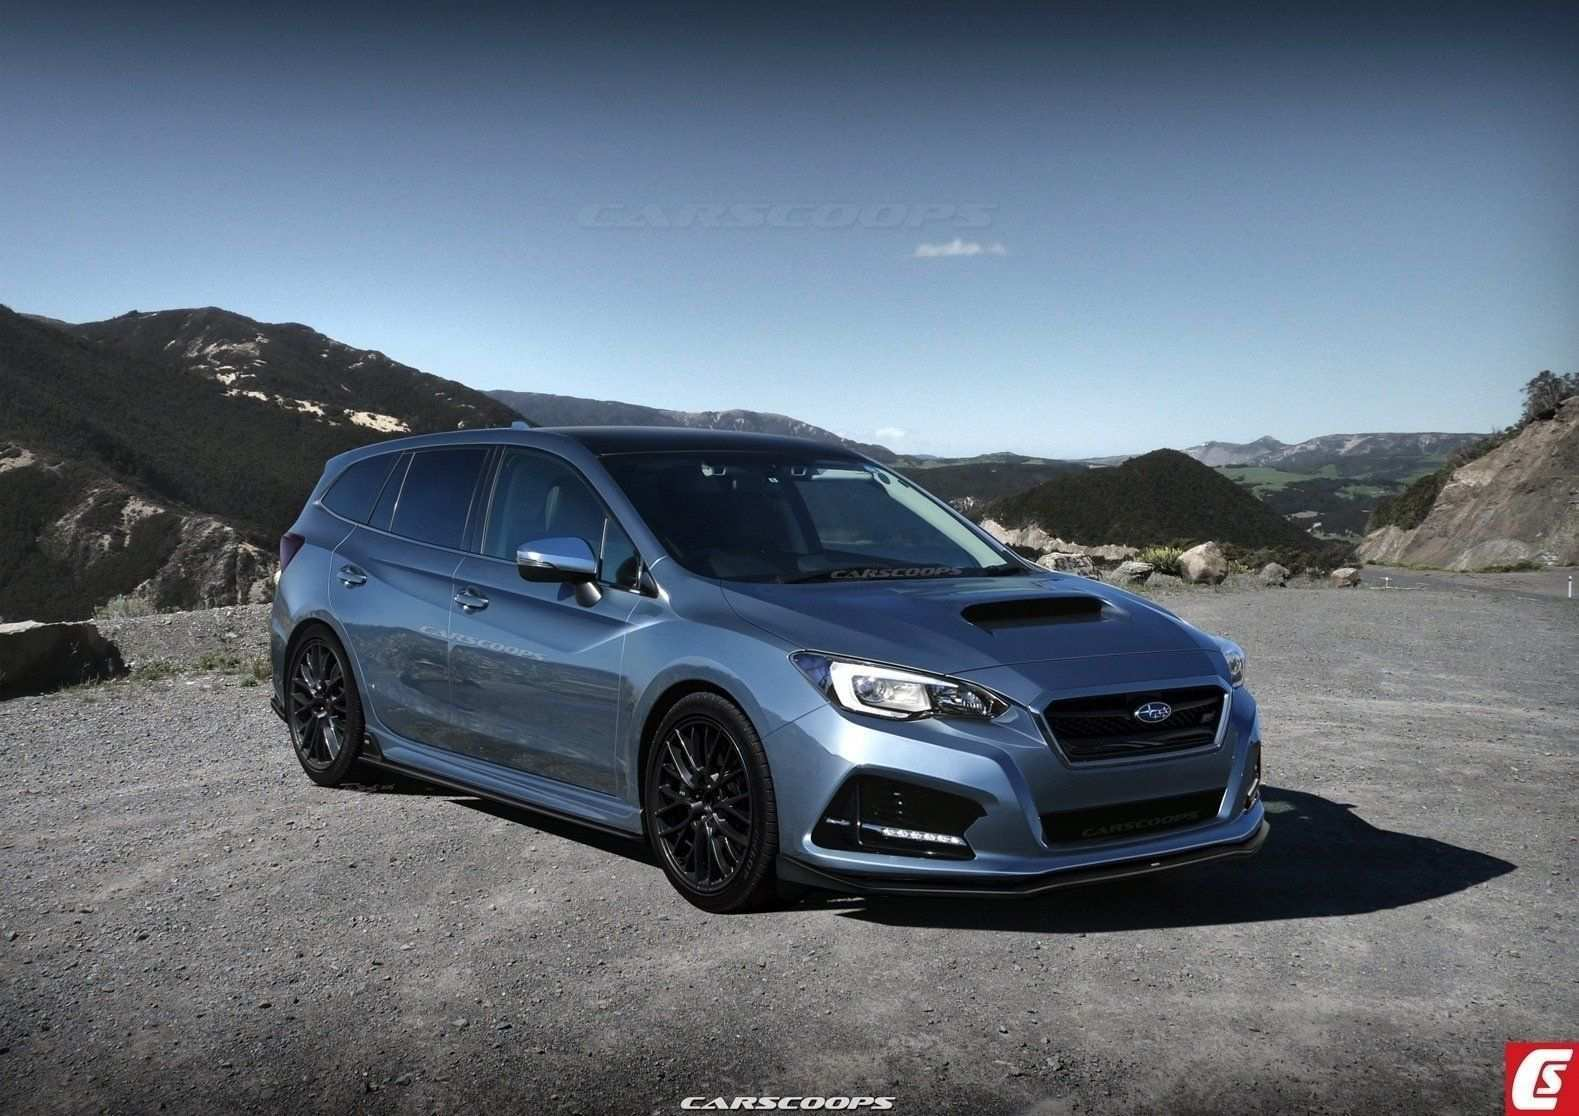 24 Gallery of Subaru Legacy Gt 2019 Pricing with Subaru Legacy Gt 2019